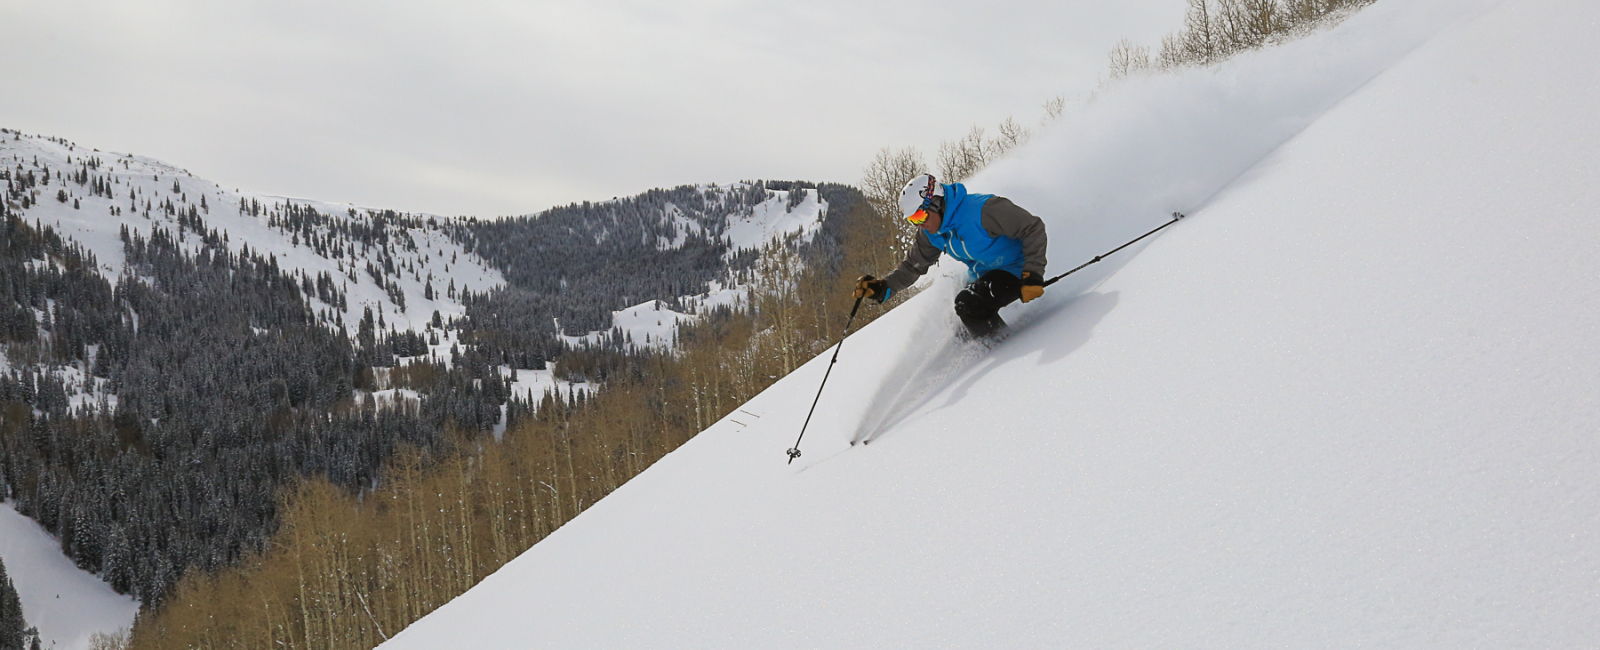 Pinecone and the Peak - Park City's Ultimate Pow Skiing!